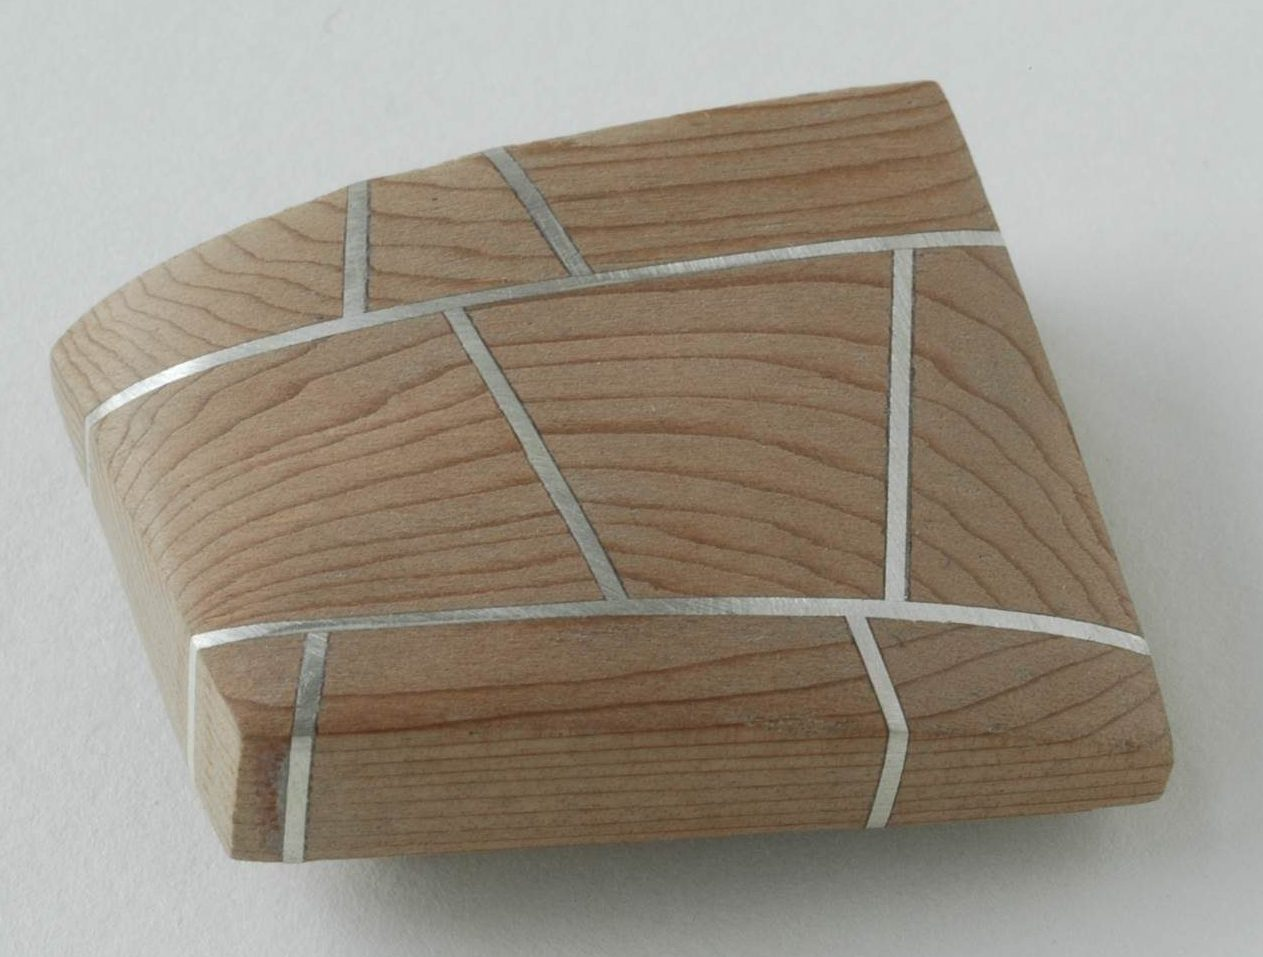 Beppe Kessler, Time and time again, broche, 2005, hout, metaal